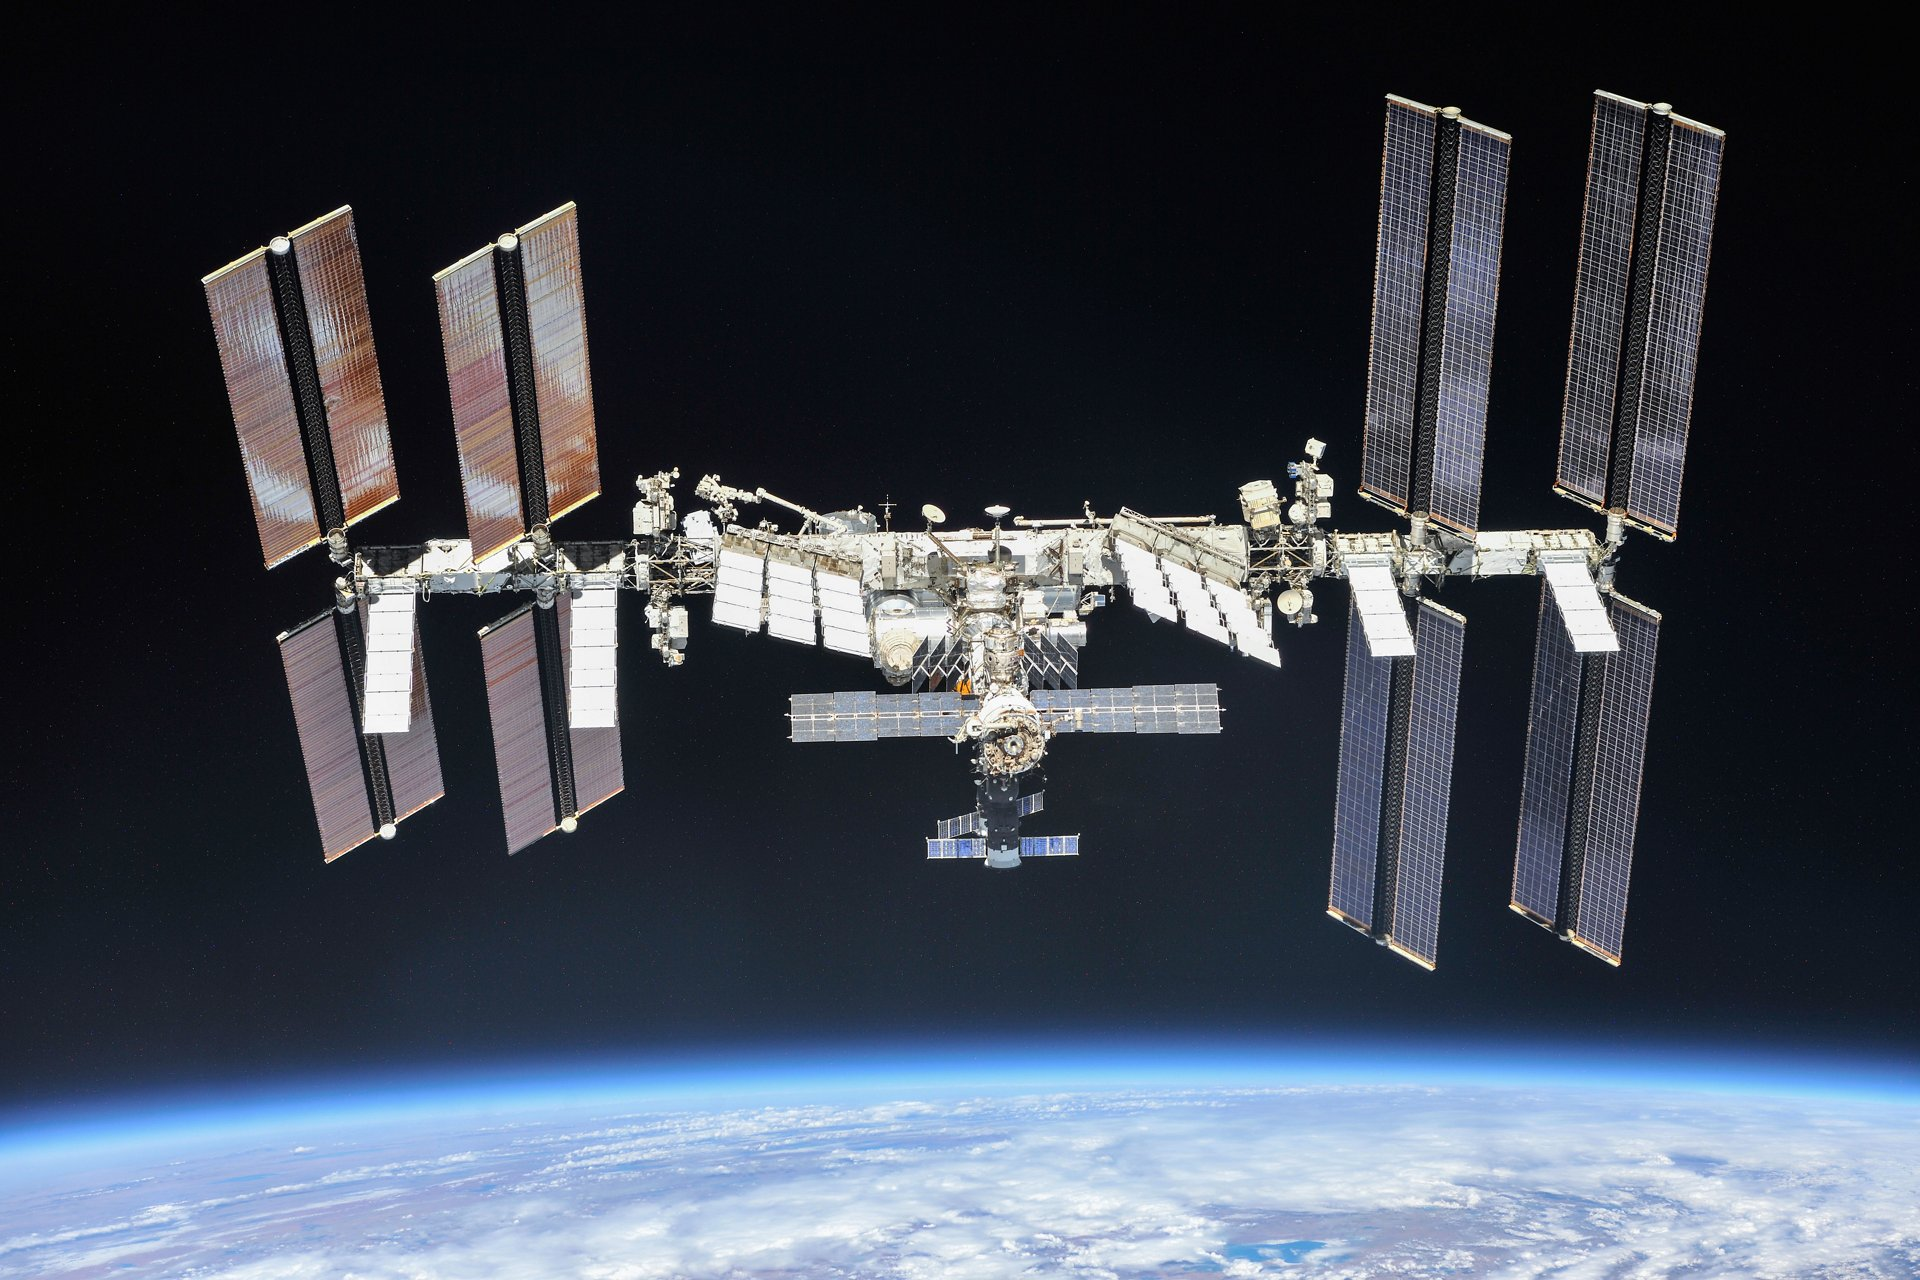 The International Space Station photographed by Expedition 56 crew members from a Soyuz spacecraft after undocking. NASA astronauts Andrew Feustel and Ricky Arnold and Roscosmos cosmonaut Oleg Artemyev executed a fly around of the orbiting laboratory to take pictures of the station before returning home after spending 197 days in space. The station will celebrate the 20th anniversary of the launch of the first element Zarya in November 2018. Credit: NASA